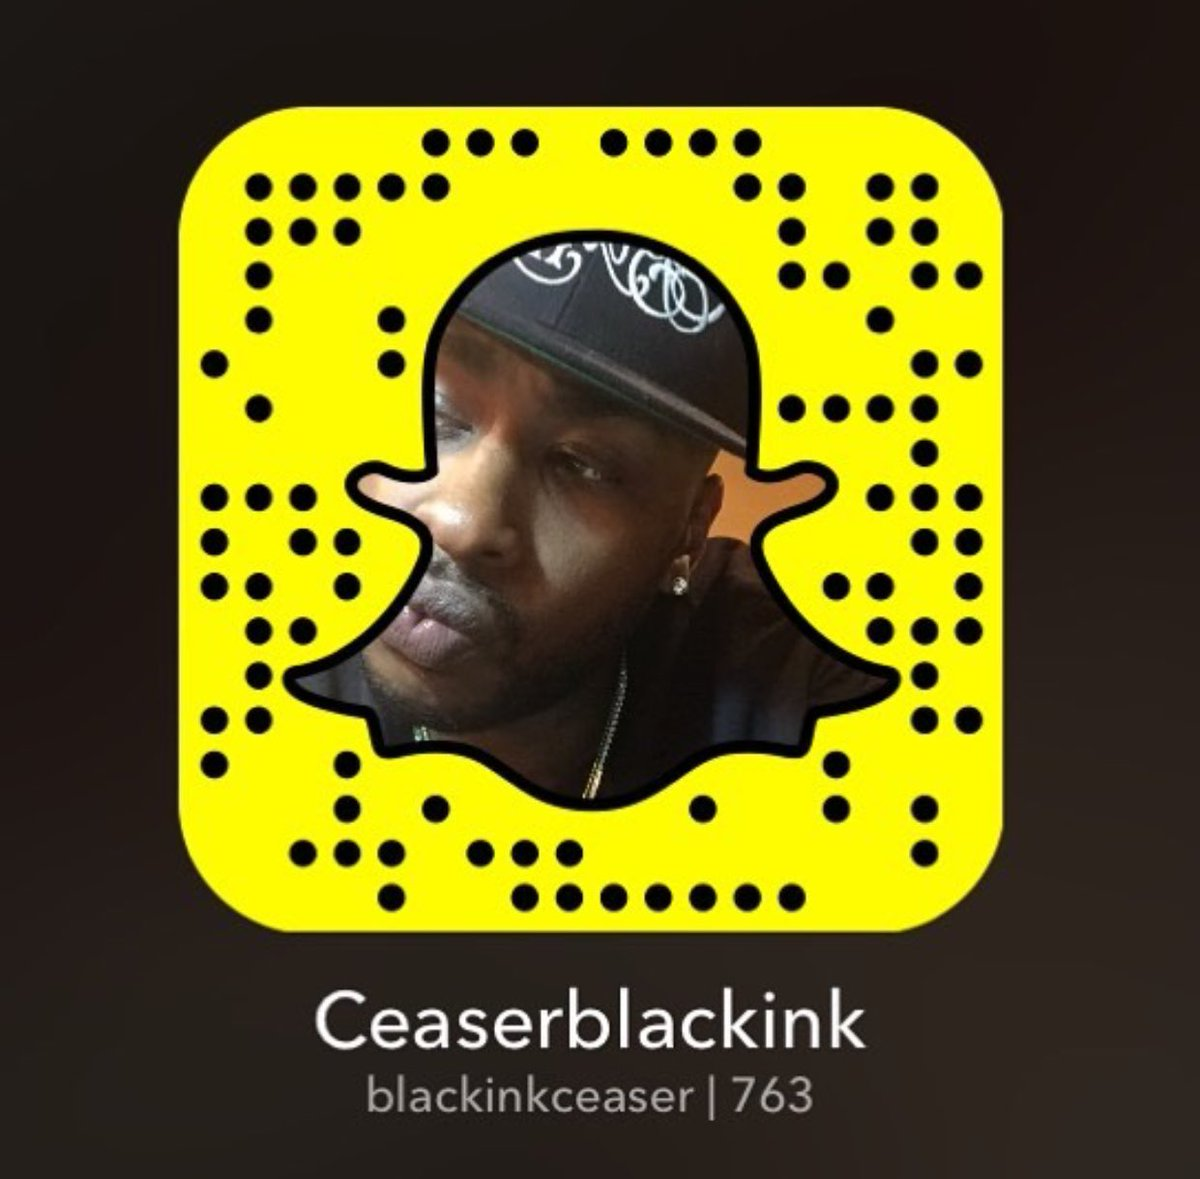 donna black ink snapchat ceaser on quot morning follow my snapchat ceaserblackink https t co 20o7oldqkn quot